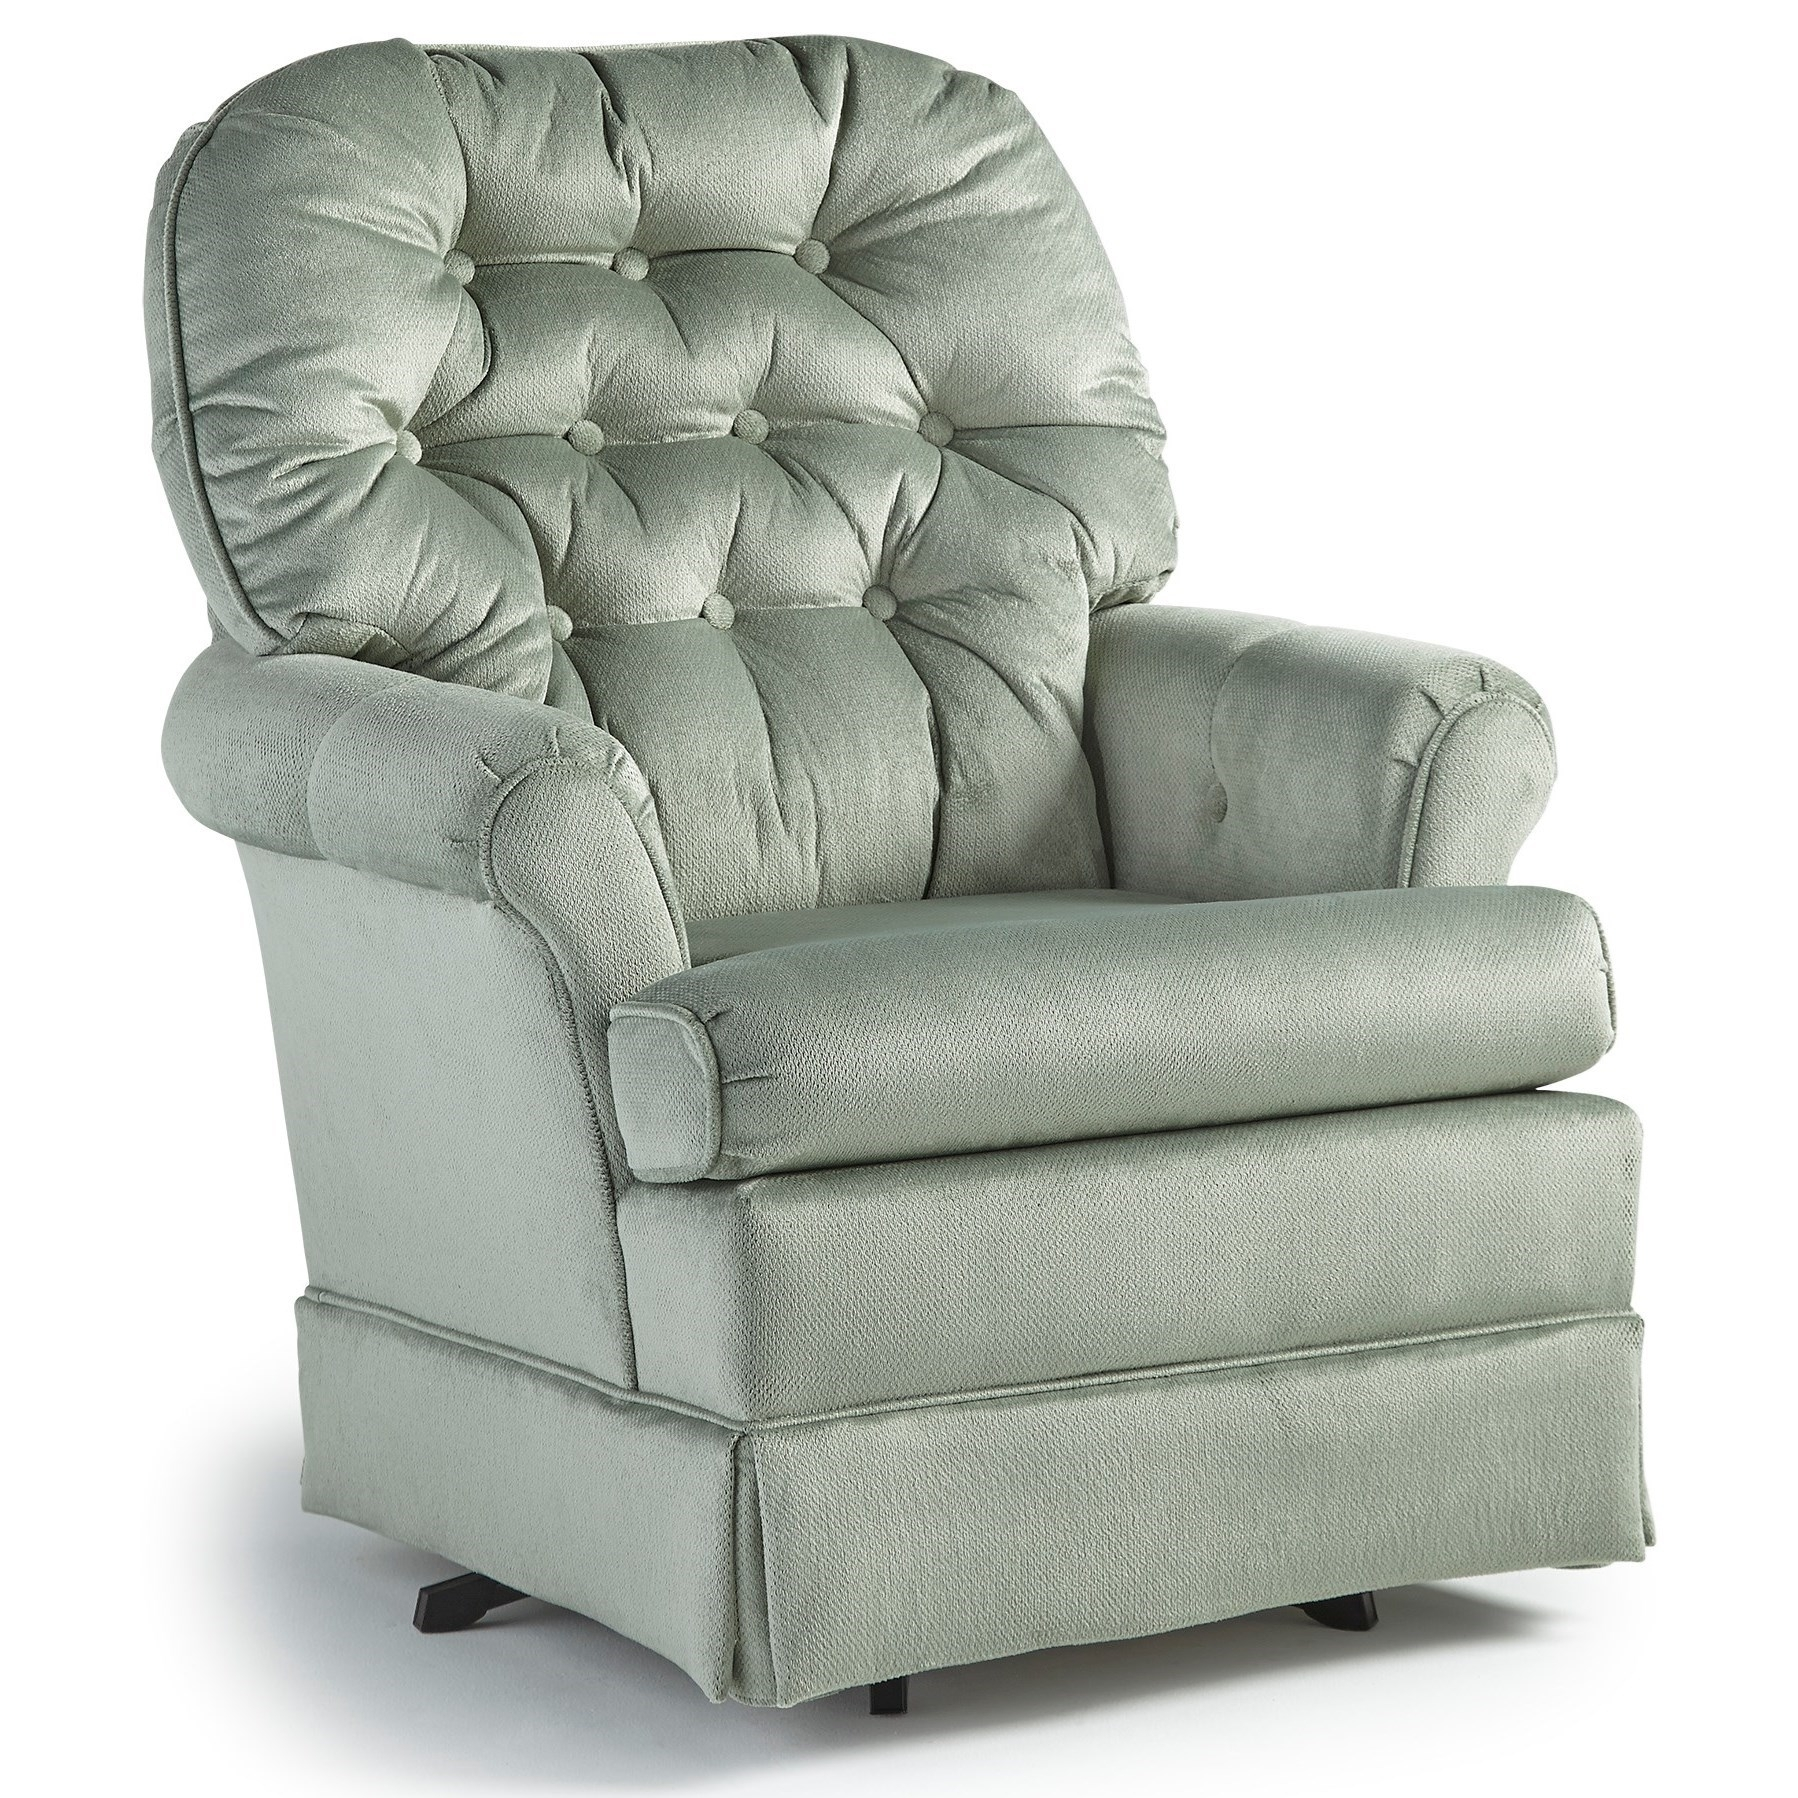 Best Home Furnishings Swivel Glide Chairs Marla Swivel Rocker Chair Regarding Swivel Rocking Chairs (#5 of 15)